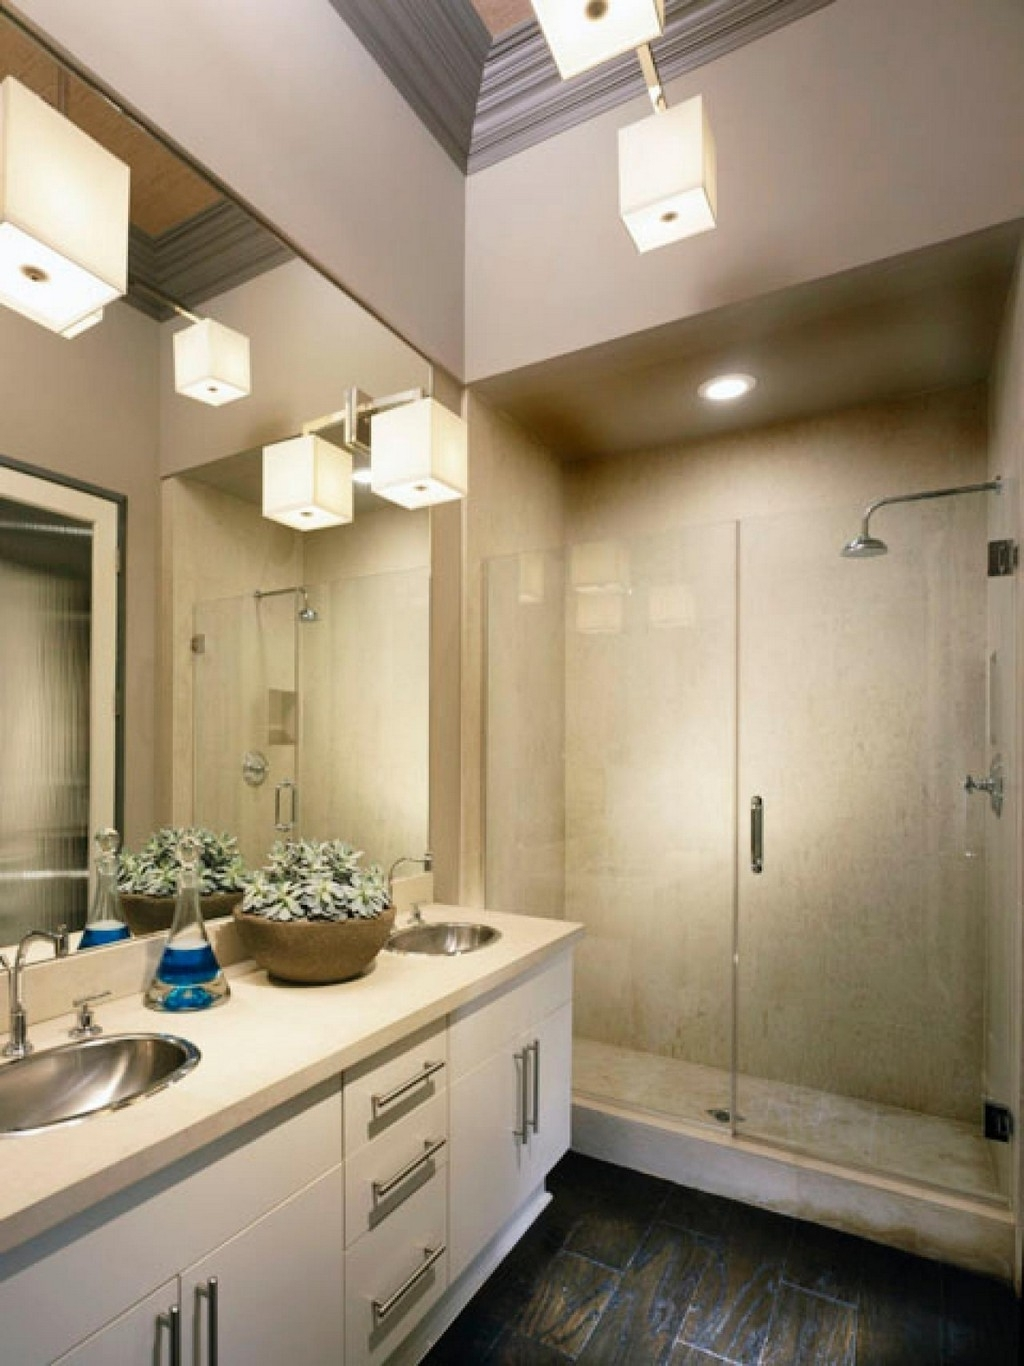 Recent Bathroom Lighting With Matching Chandeliers For Chandeliers Design Wonderfulathroom Lights Hanging Ceiling Lighting (View 15 of 15)